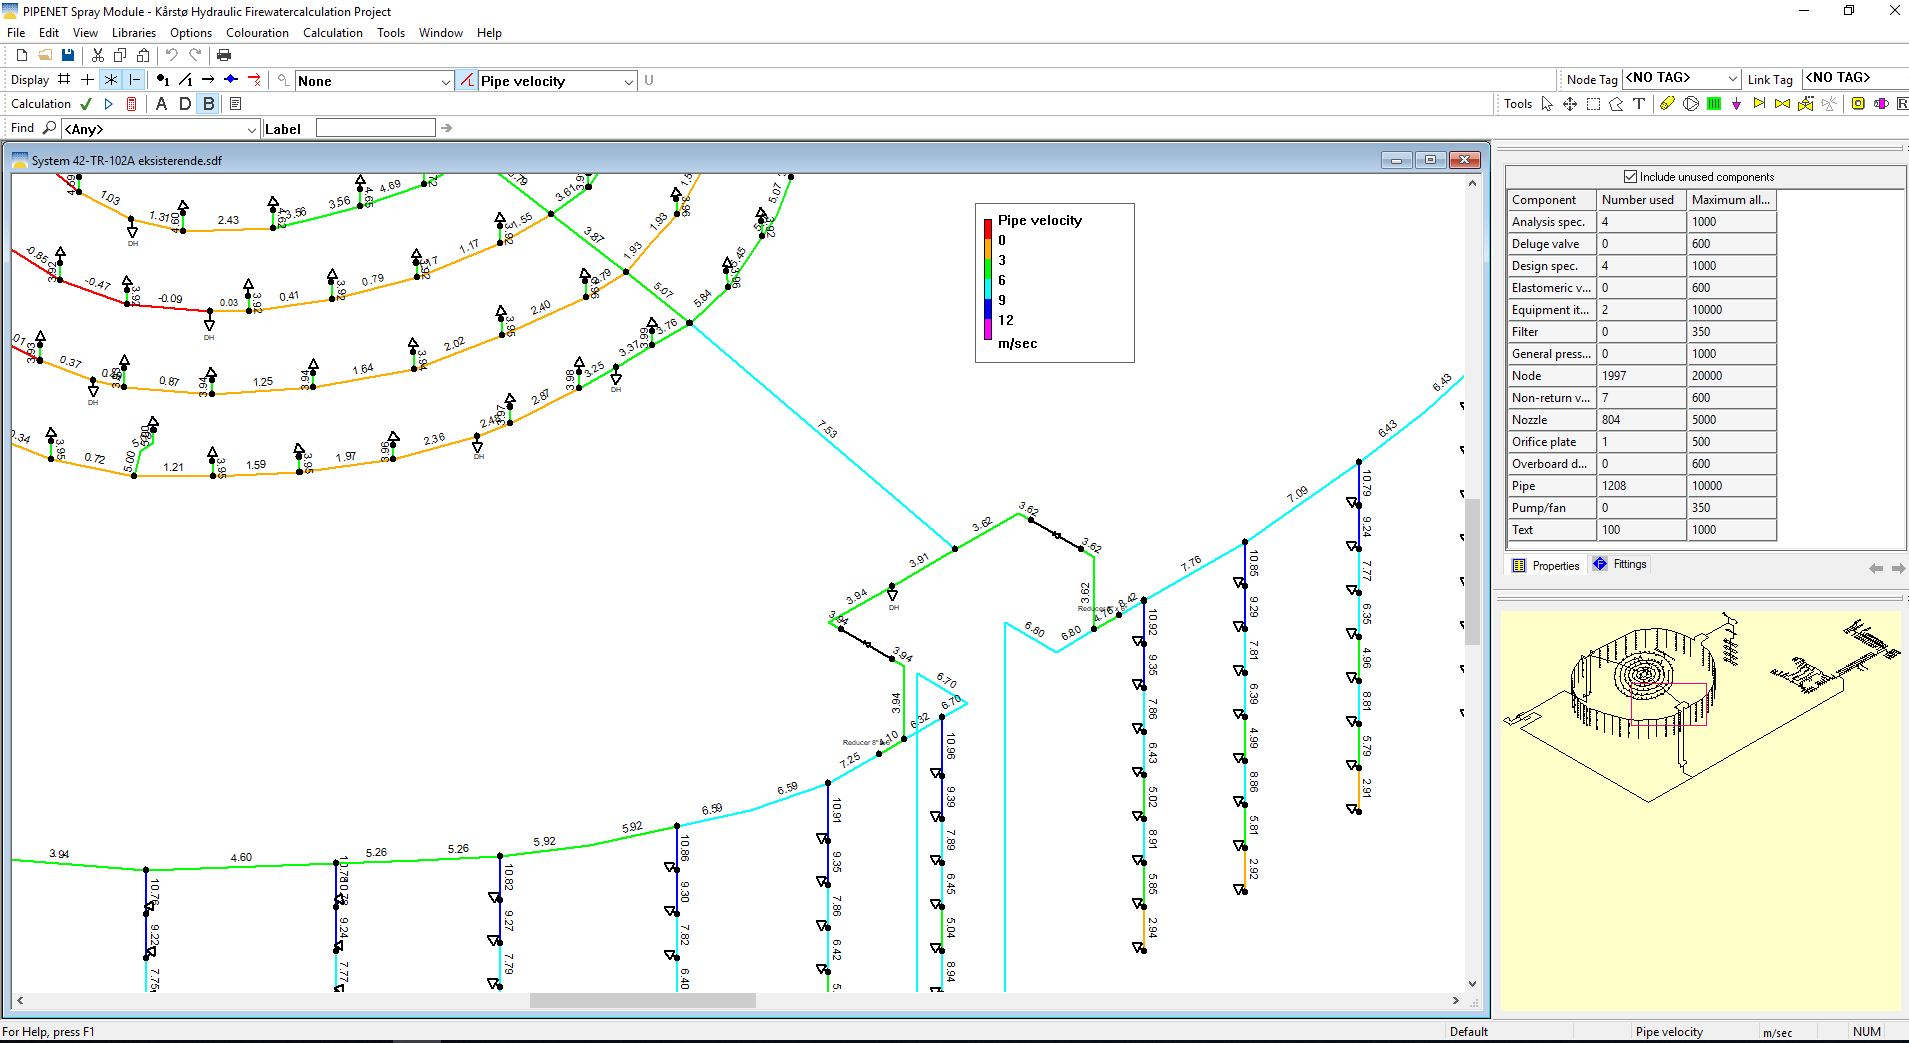 PIPENET Spray/Sprinkler software hydraulic analysis of firewater systems